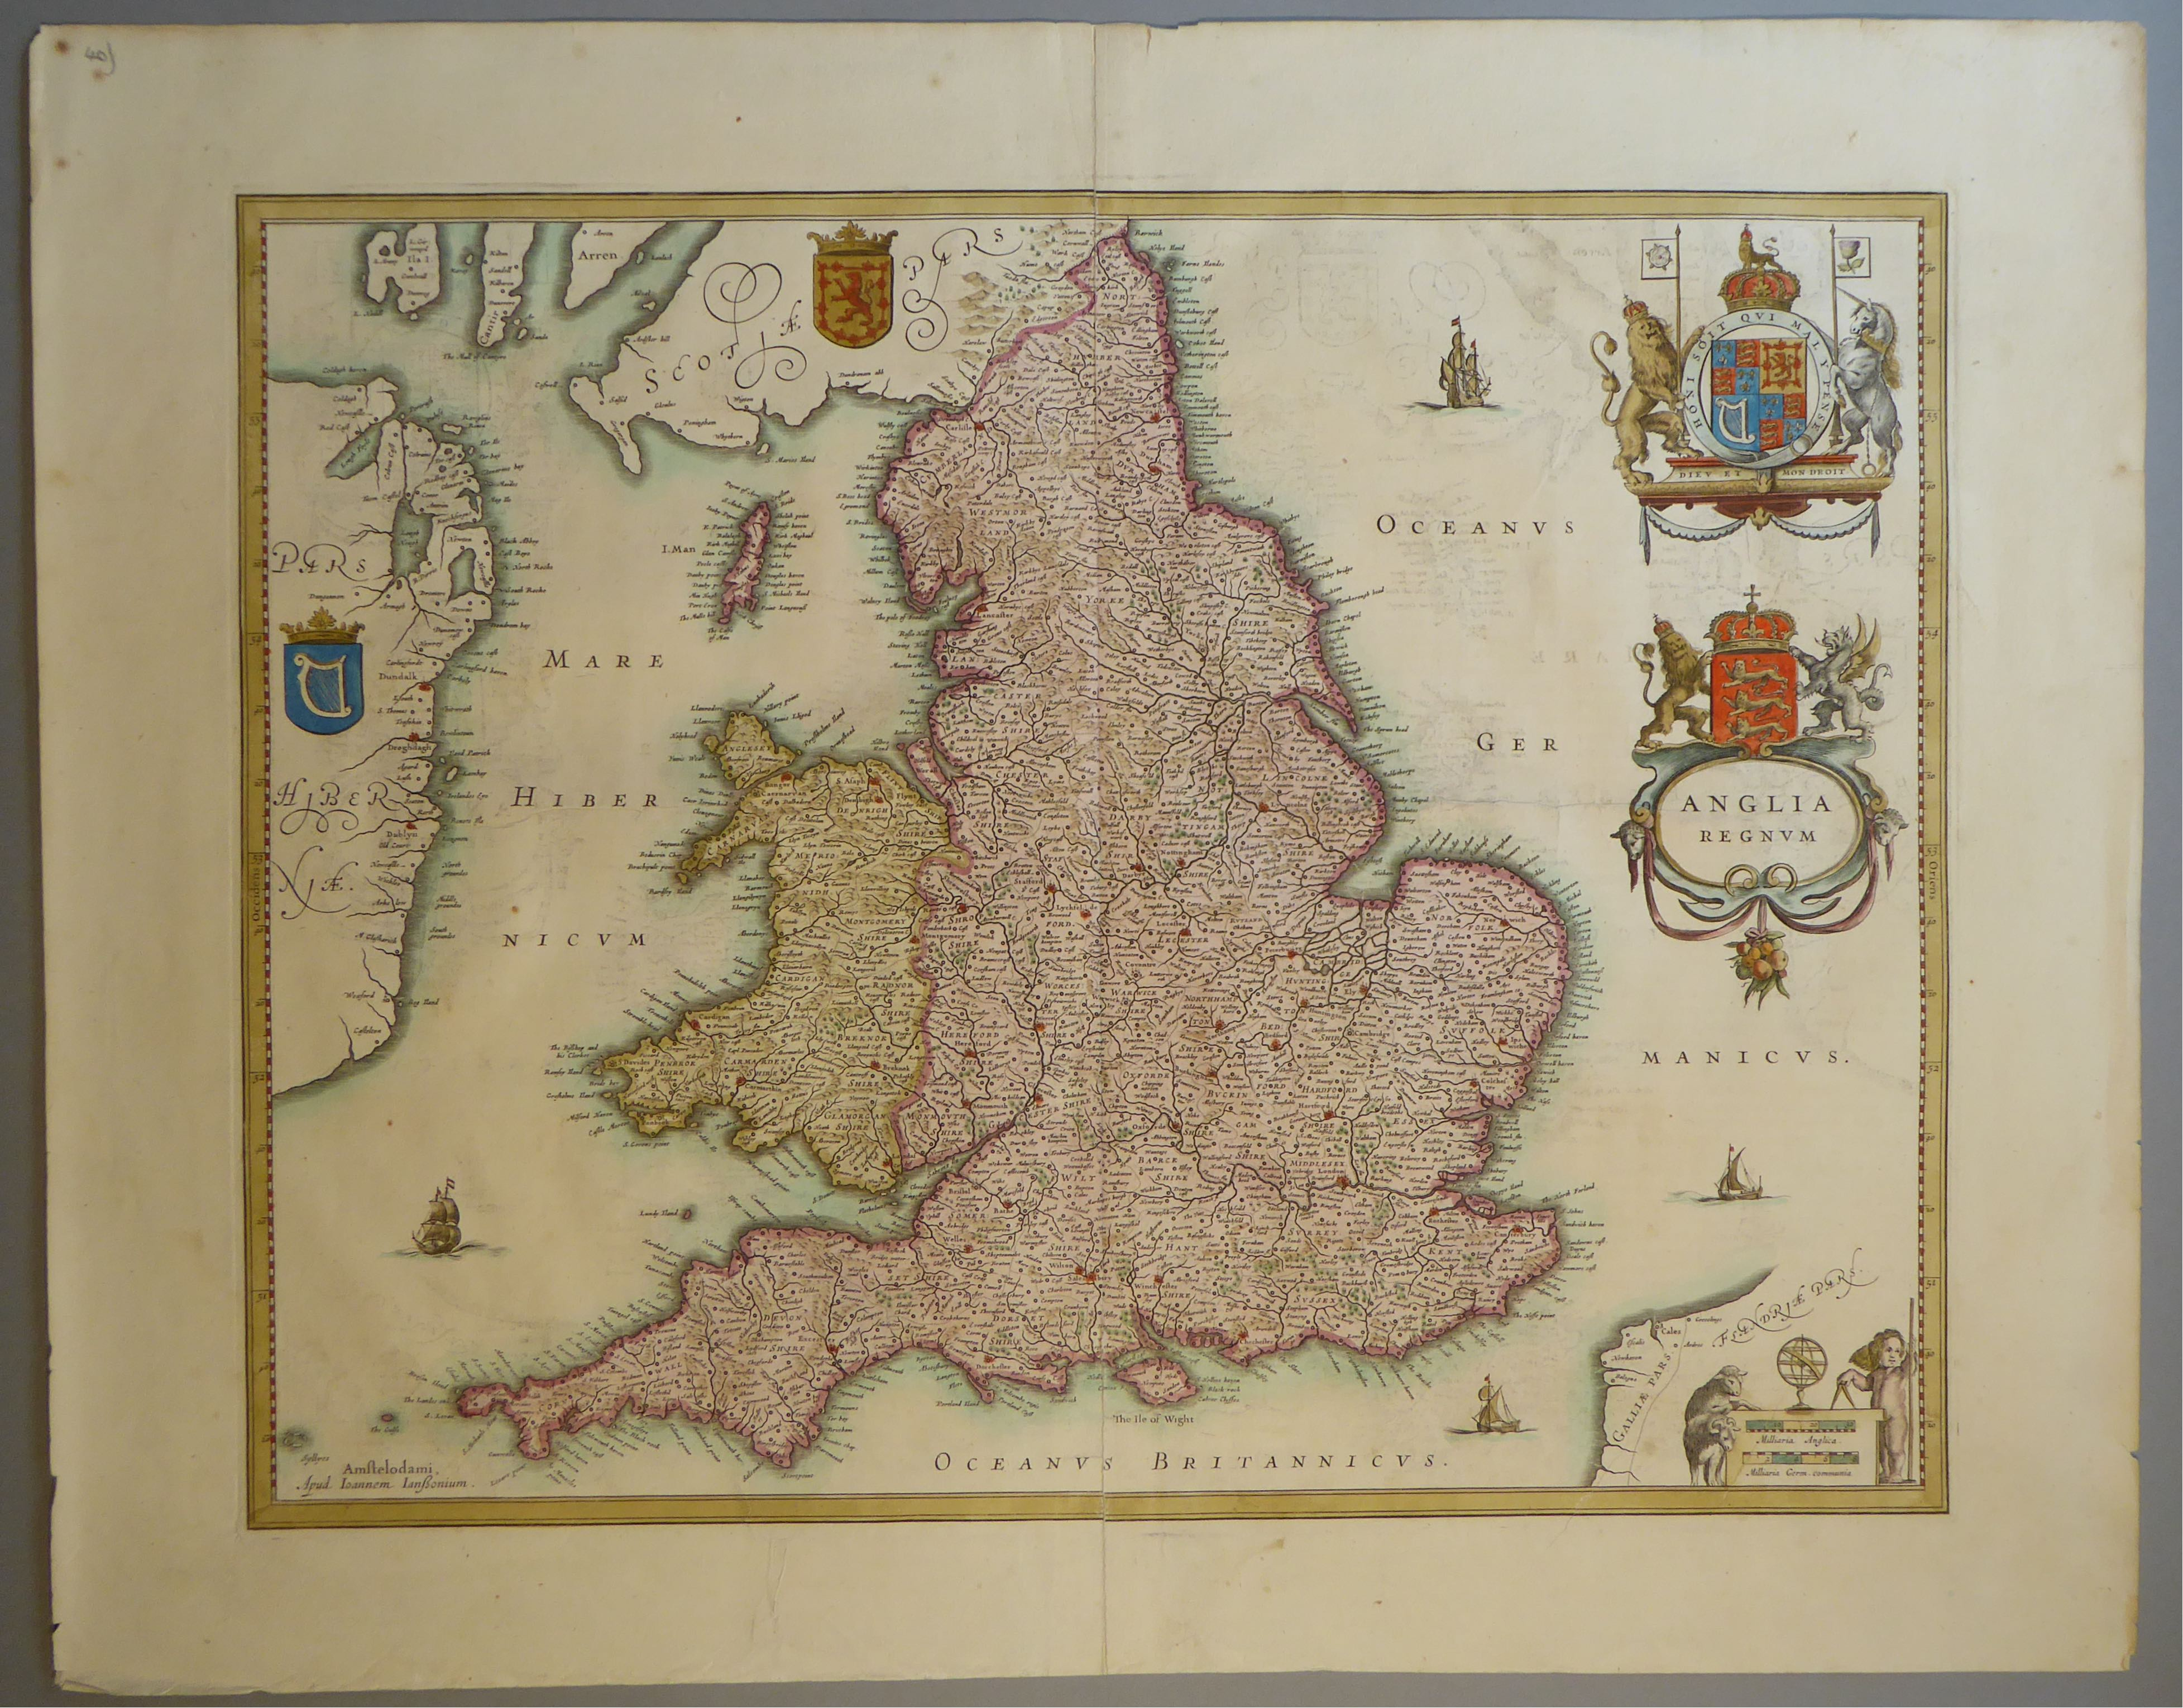 Lot 60 - A C17th hand coloured copper engraved map of England & Wales by Johann Jansson, c1650